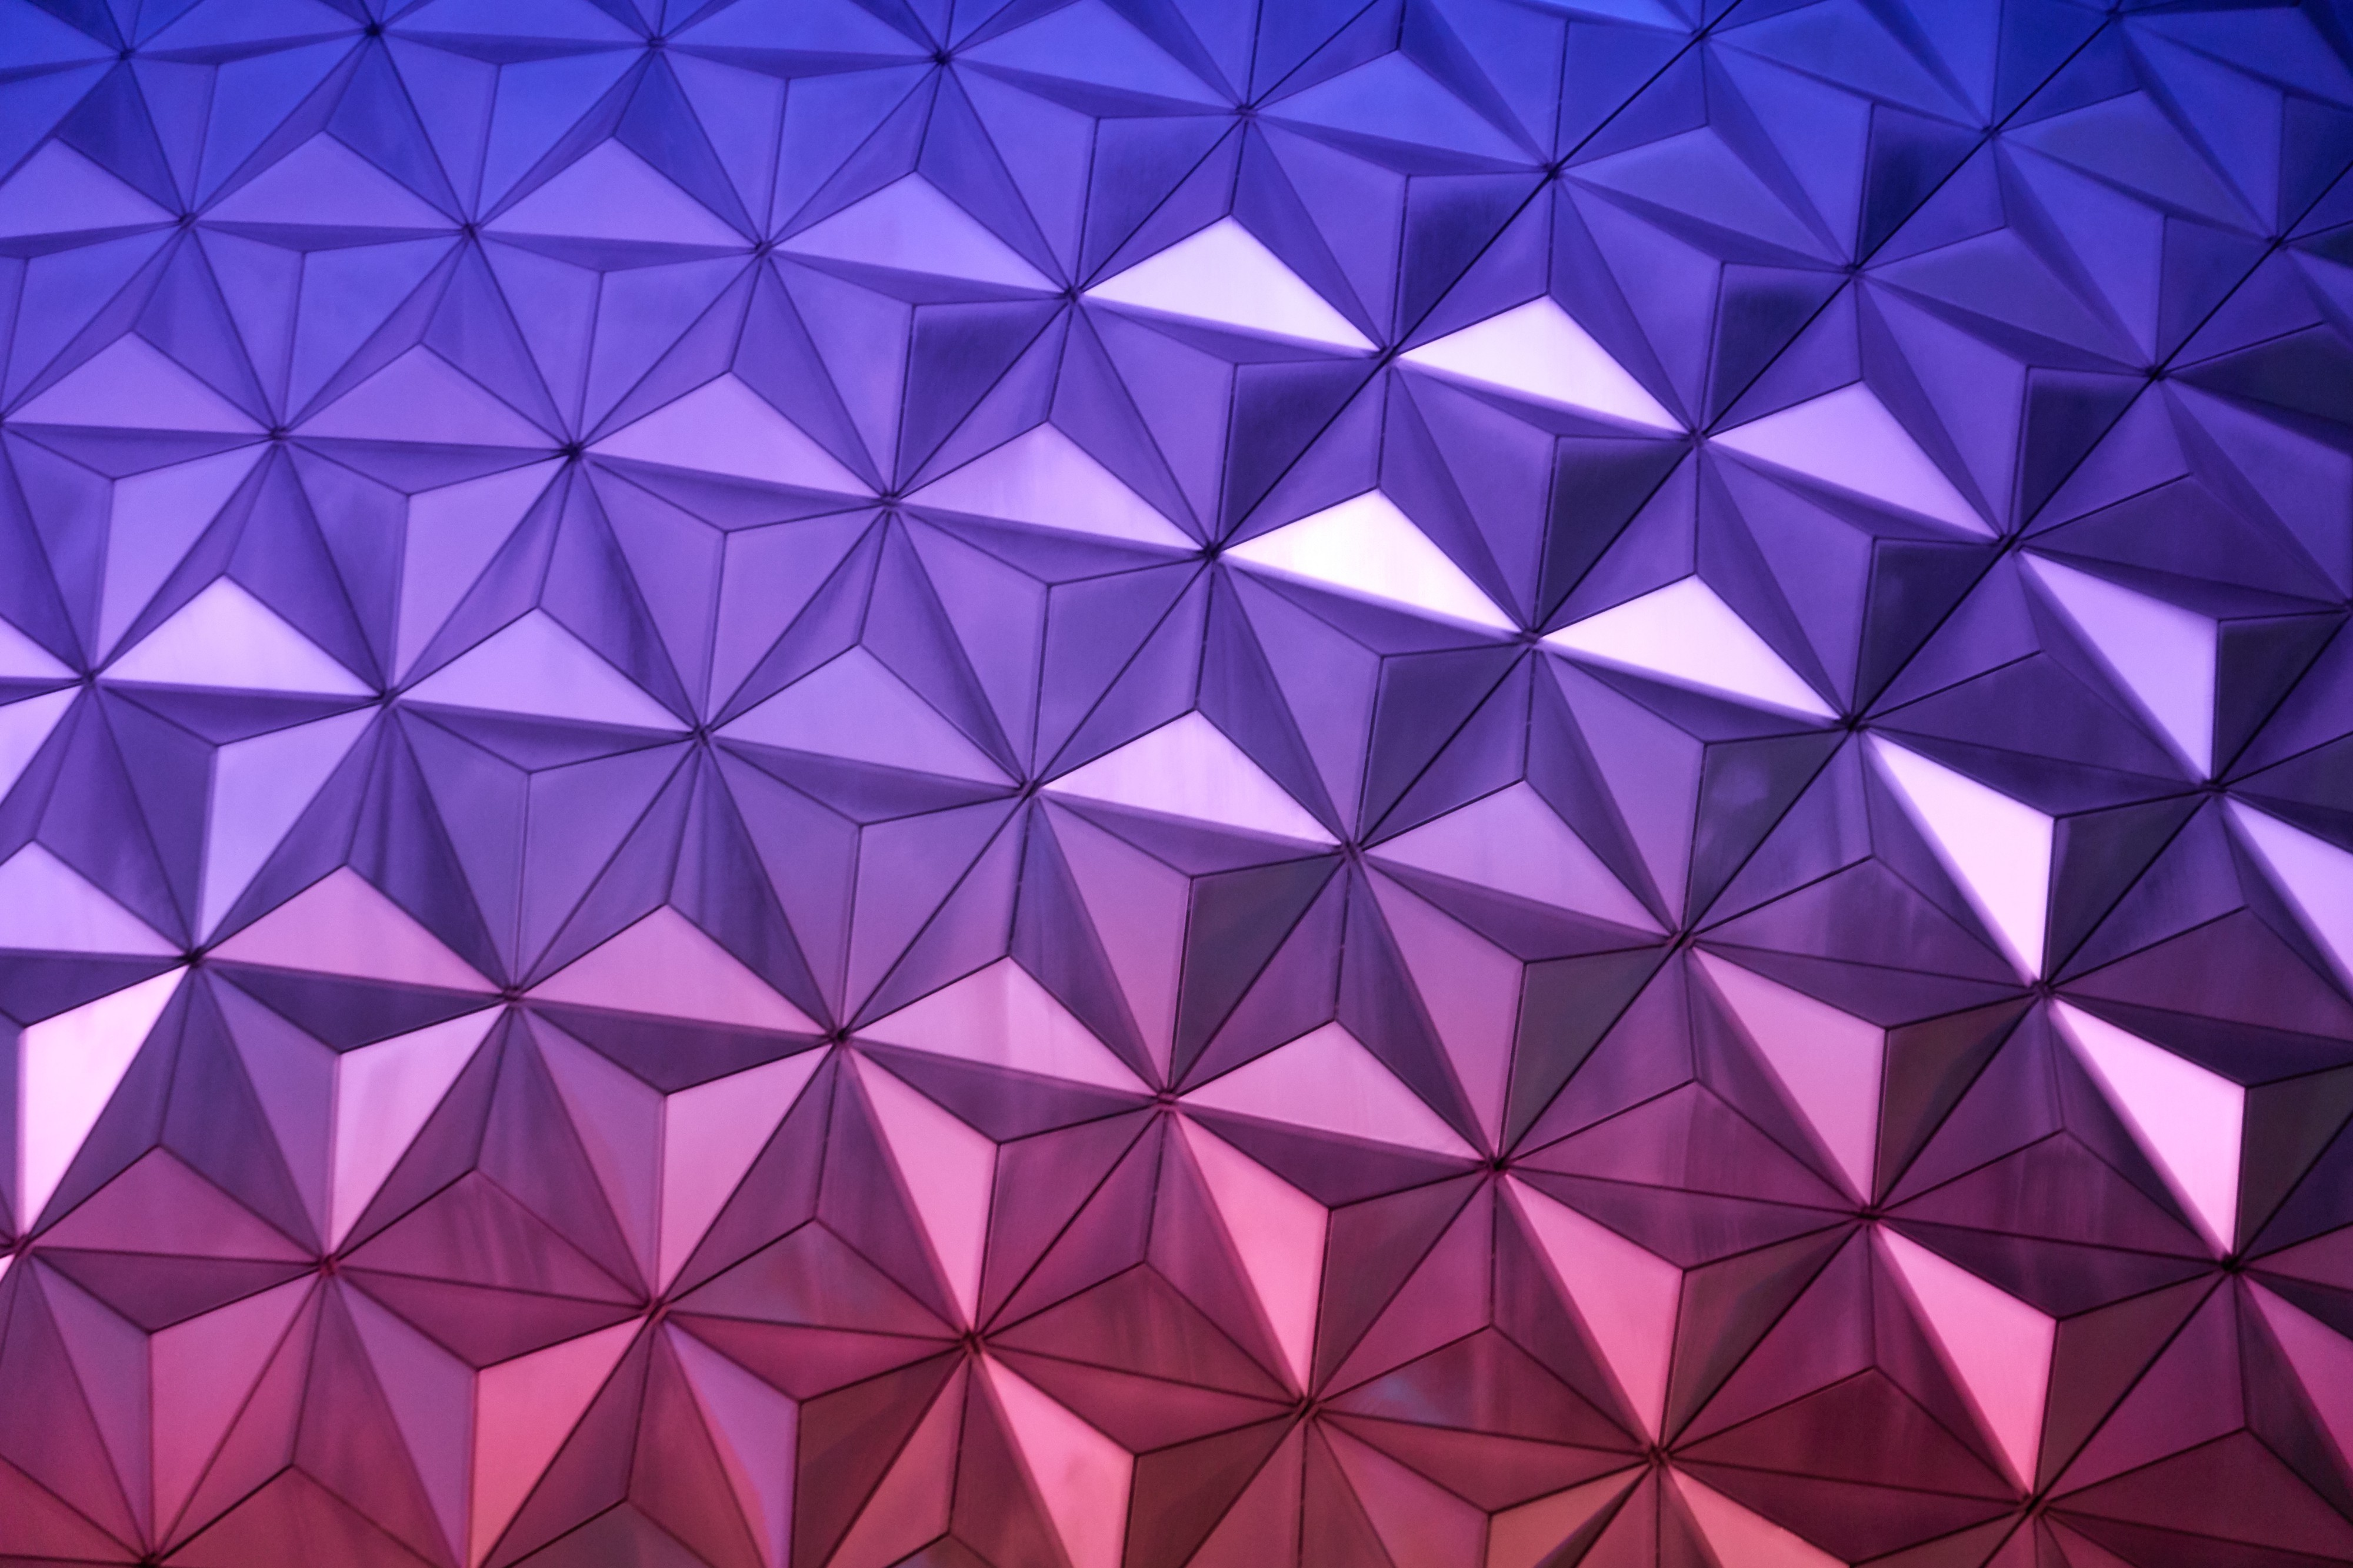 Photo by Robert Horvick of a triangular pattern of glass, purple and pink and reflective.